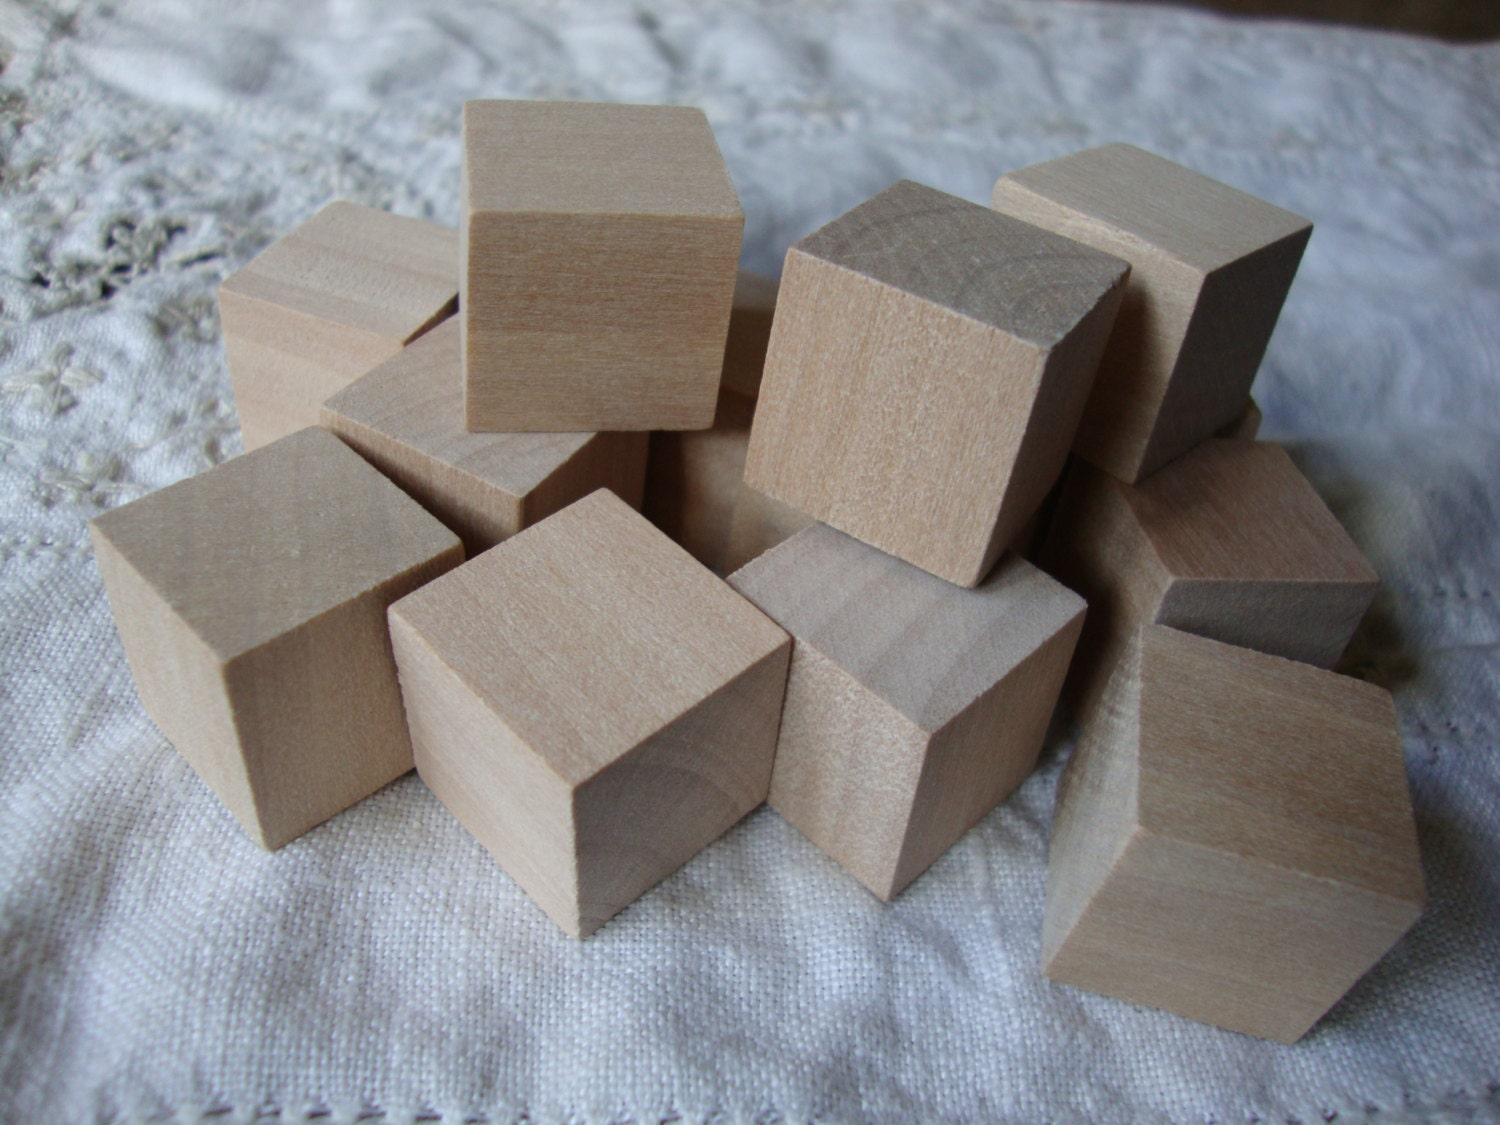 Mini wood blocks unfinished wood crafts supplies 1 wood for Where to buy wood blocks for crafts